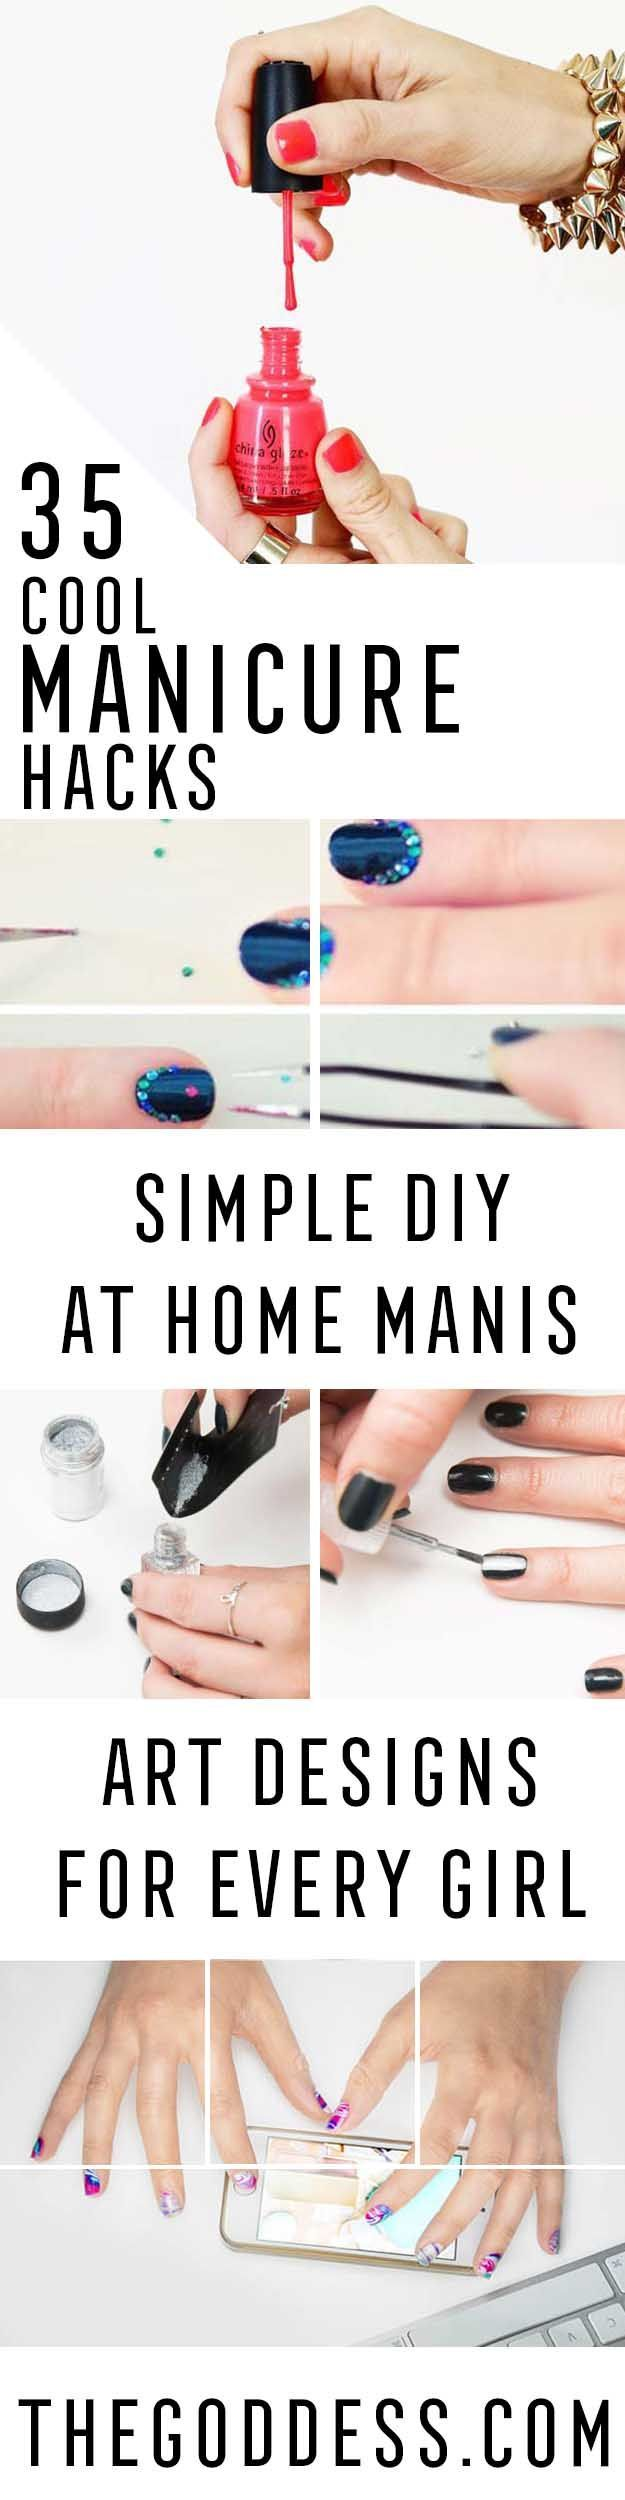 Cool Manicure Hacks - Amazing DIY Manicure Hacks You can Do At Home ...